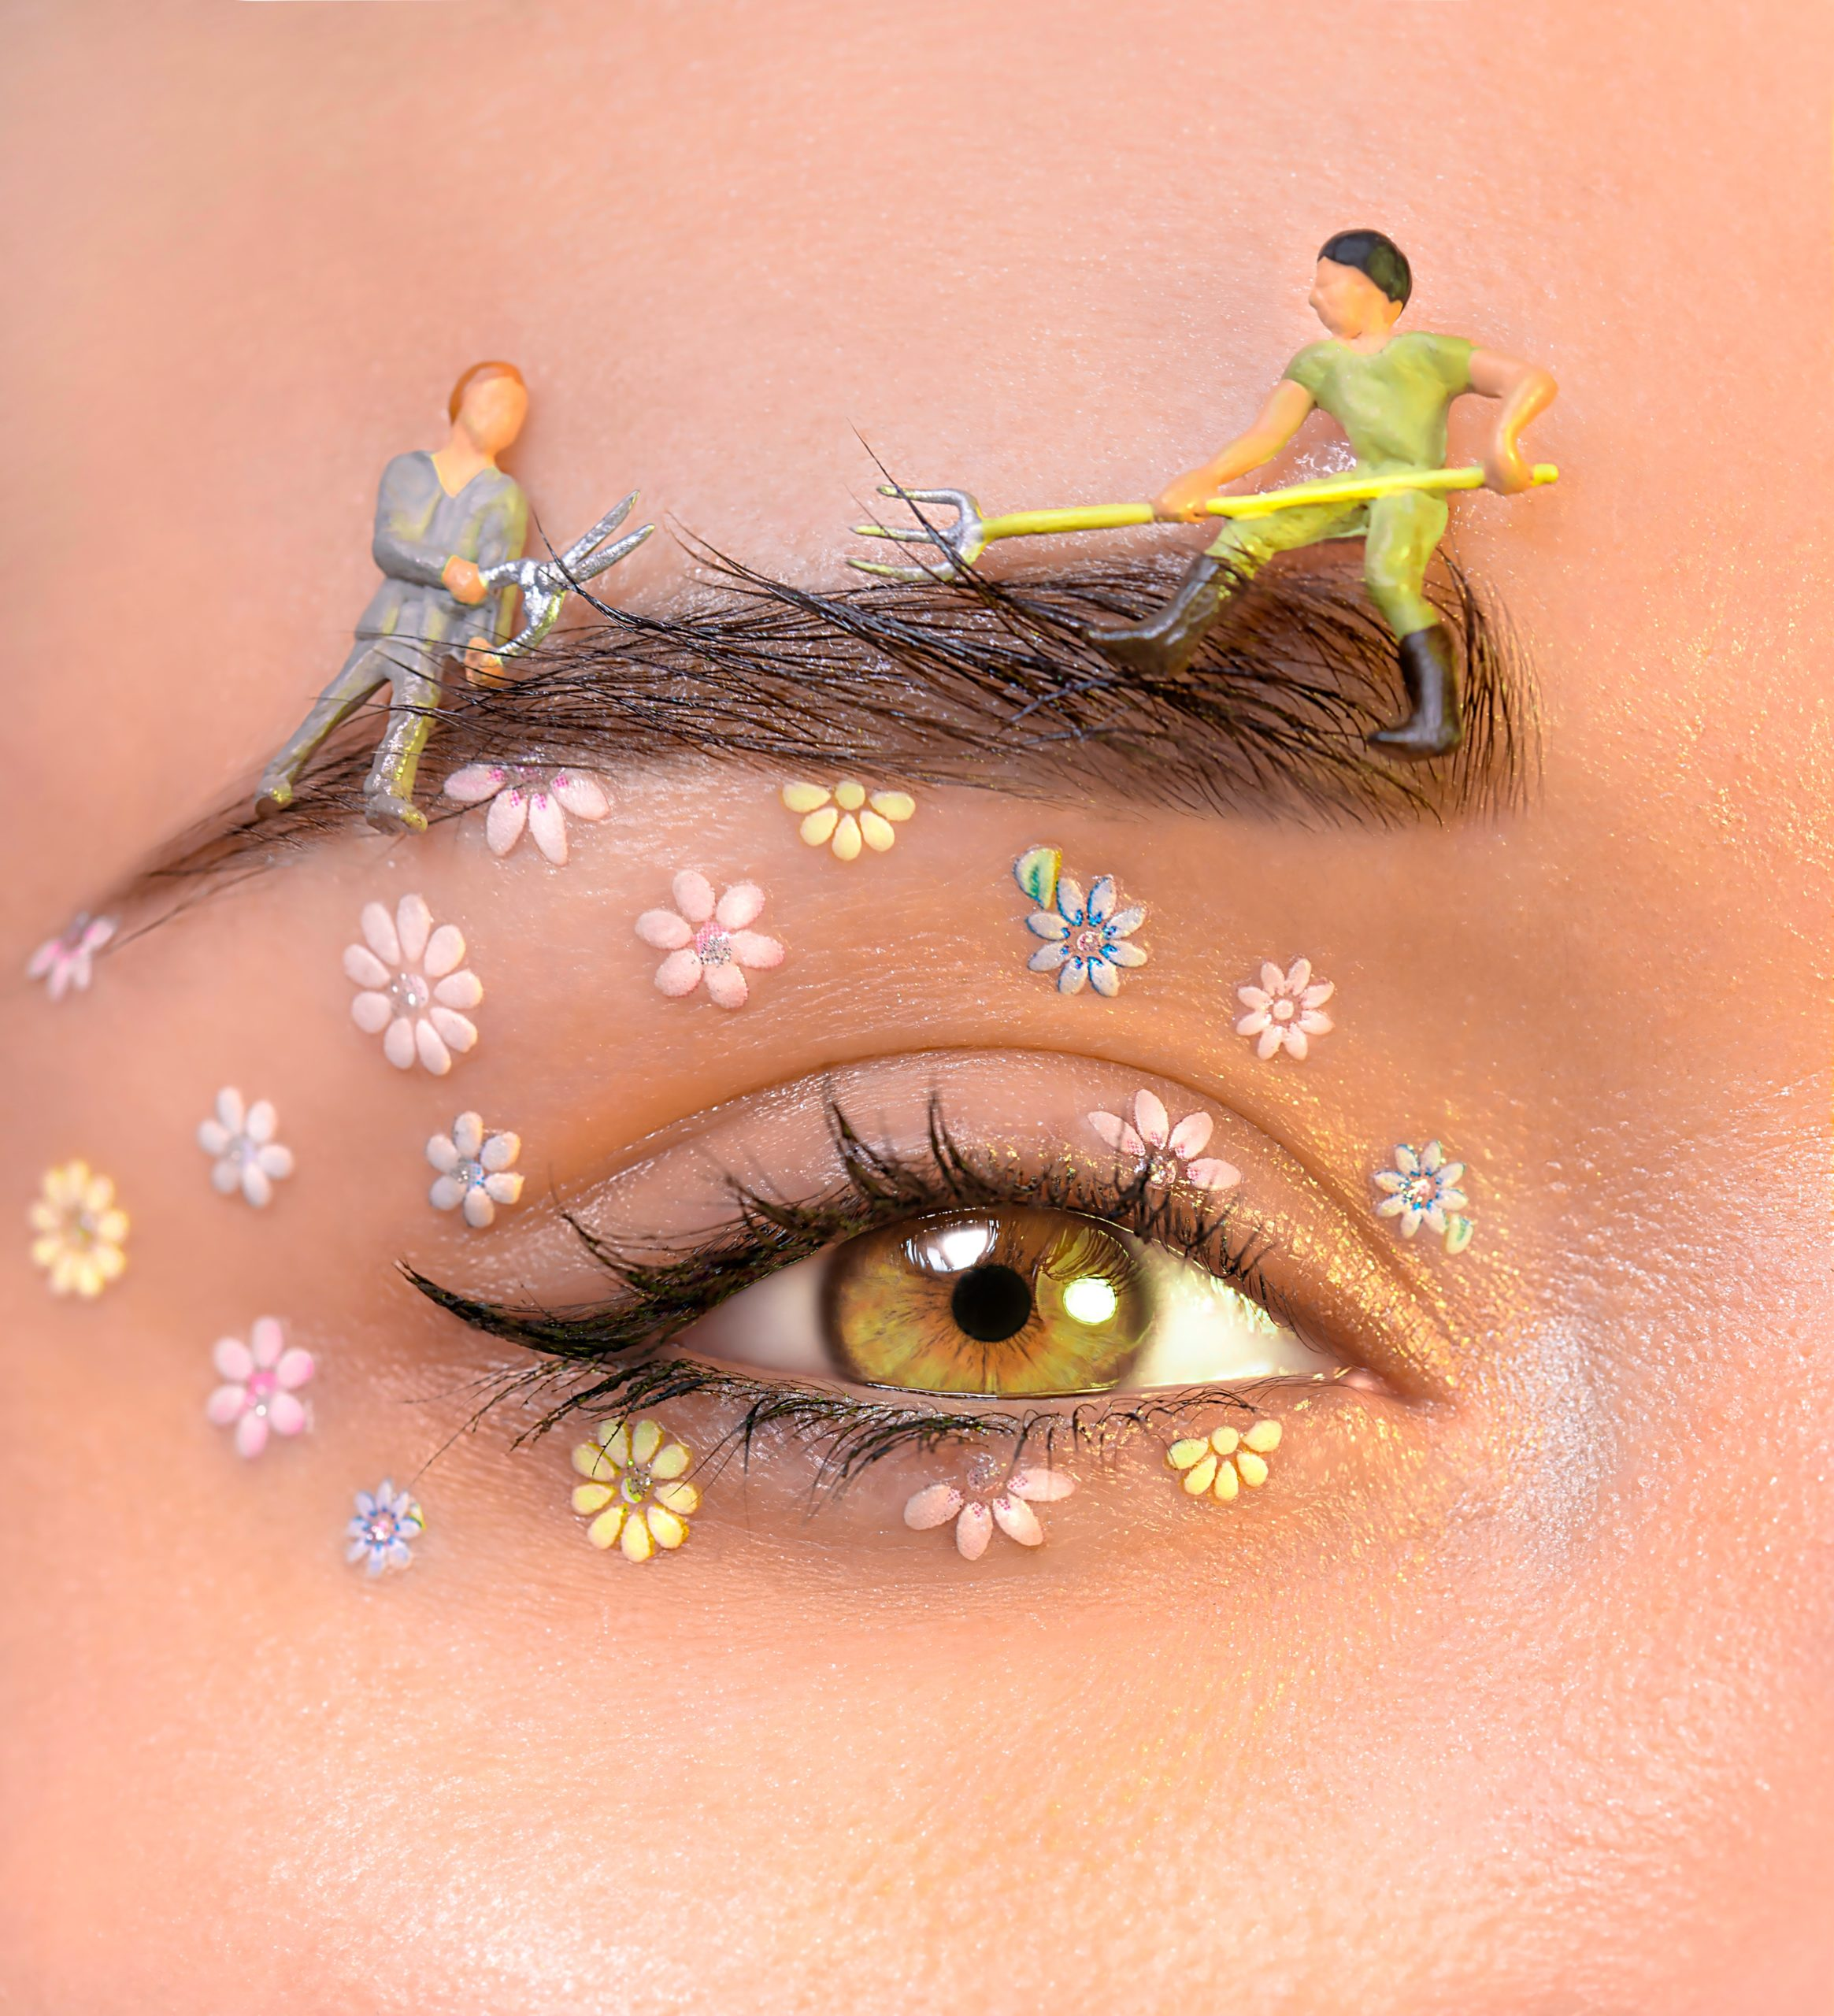 artistic-eye-makeup-3601536